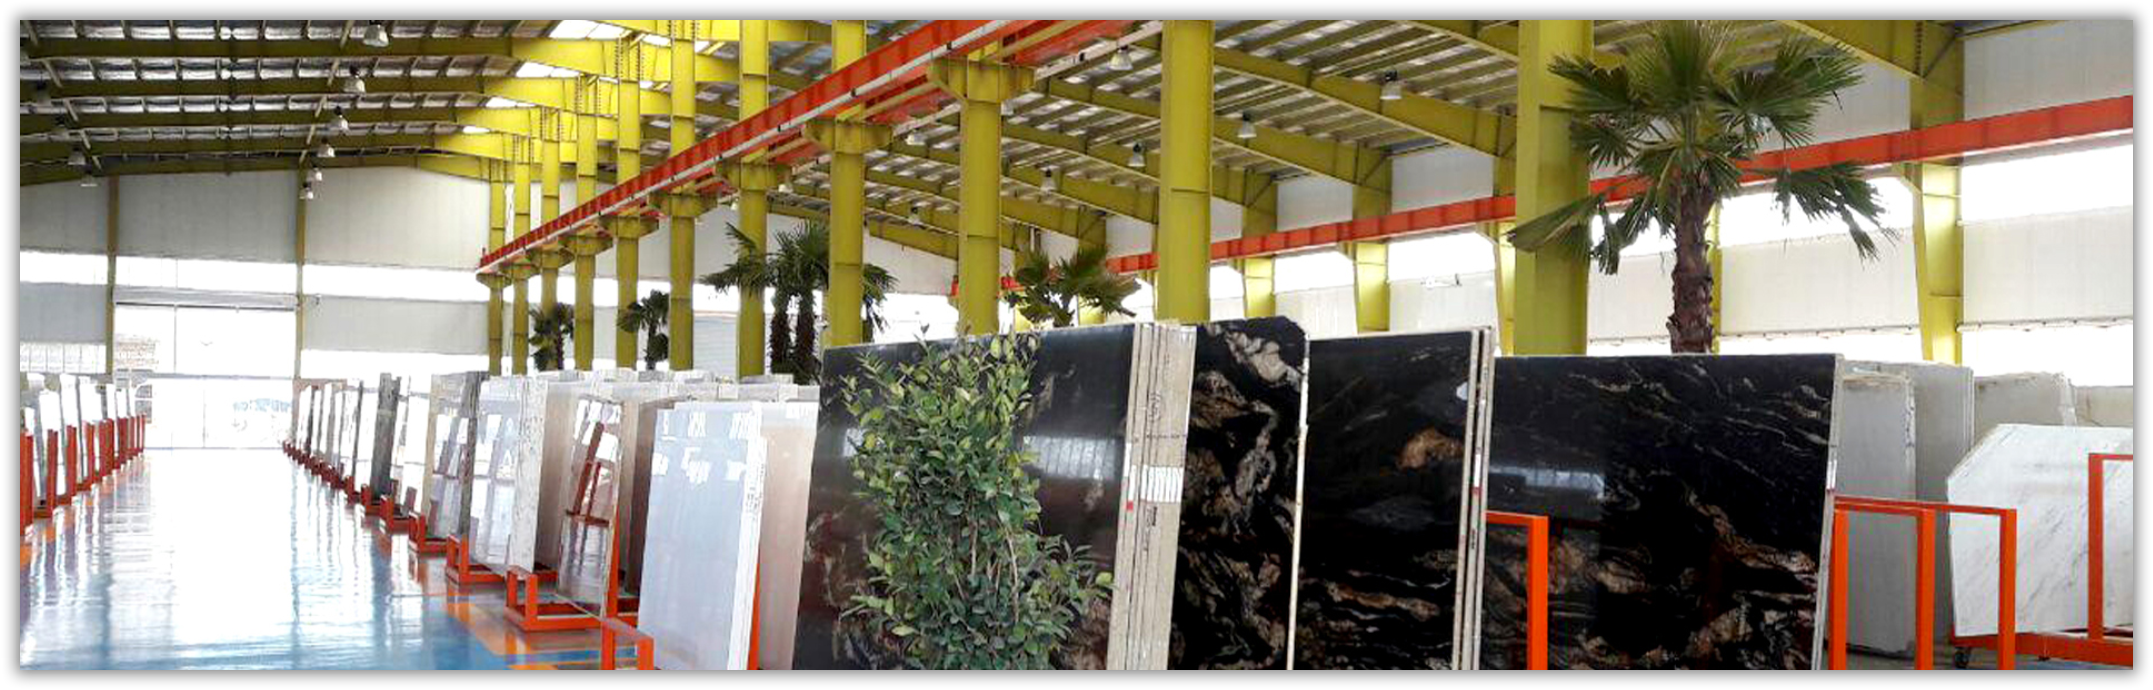 Tehran International Exhibition of Decorative Stones, Mining, Machinery and Related Equipment